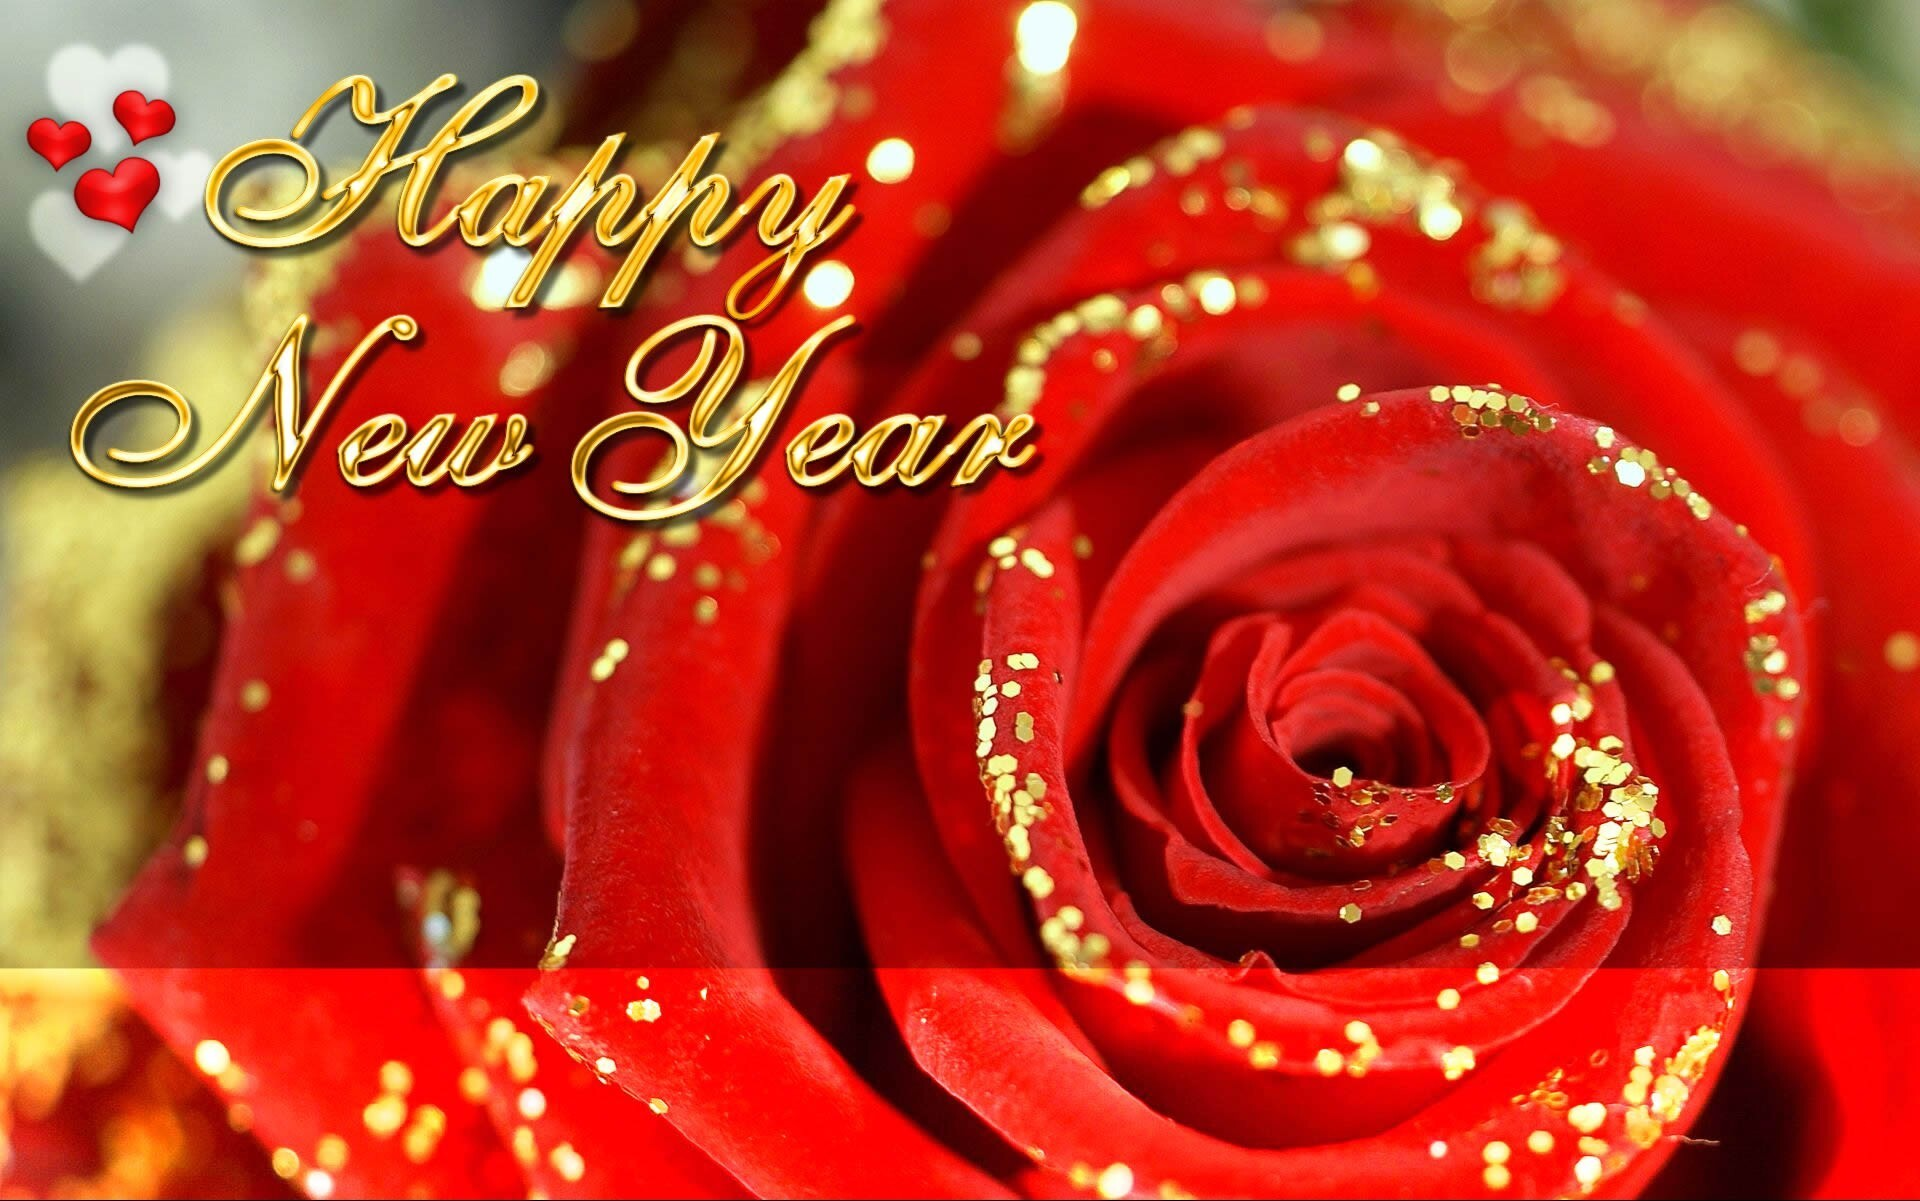 happy new year red rose wallpaper hd wallpapers